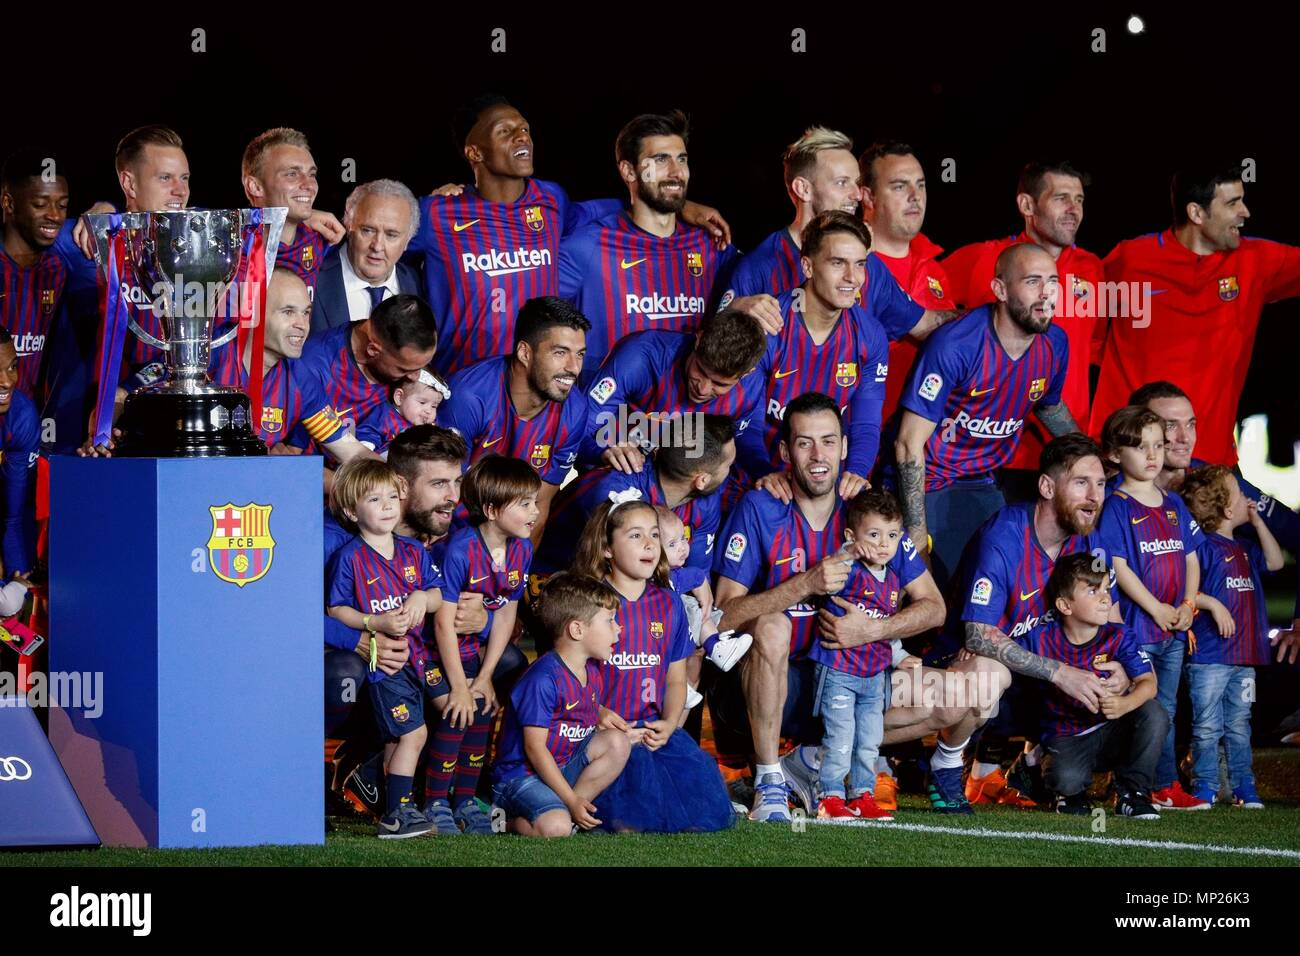 Barcelona, Spain. 20th May, 2018. FC Barcelona's players pose for photo after a Spanish league match between FC Barcelona and Real Sociedad in Barcelona, Spain, on May 20, 2018. Barcelona won 1-0. It was the last Spanish league match that Andres Iniesta played as team captain at the Camp Nou stadium. Credit: Joan Gosa/Xinhua/Alamy Live News Stock Photo